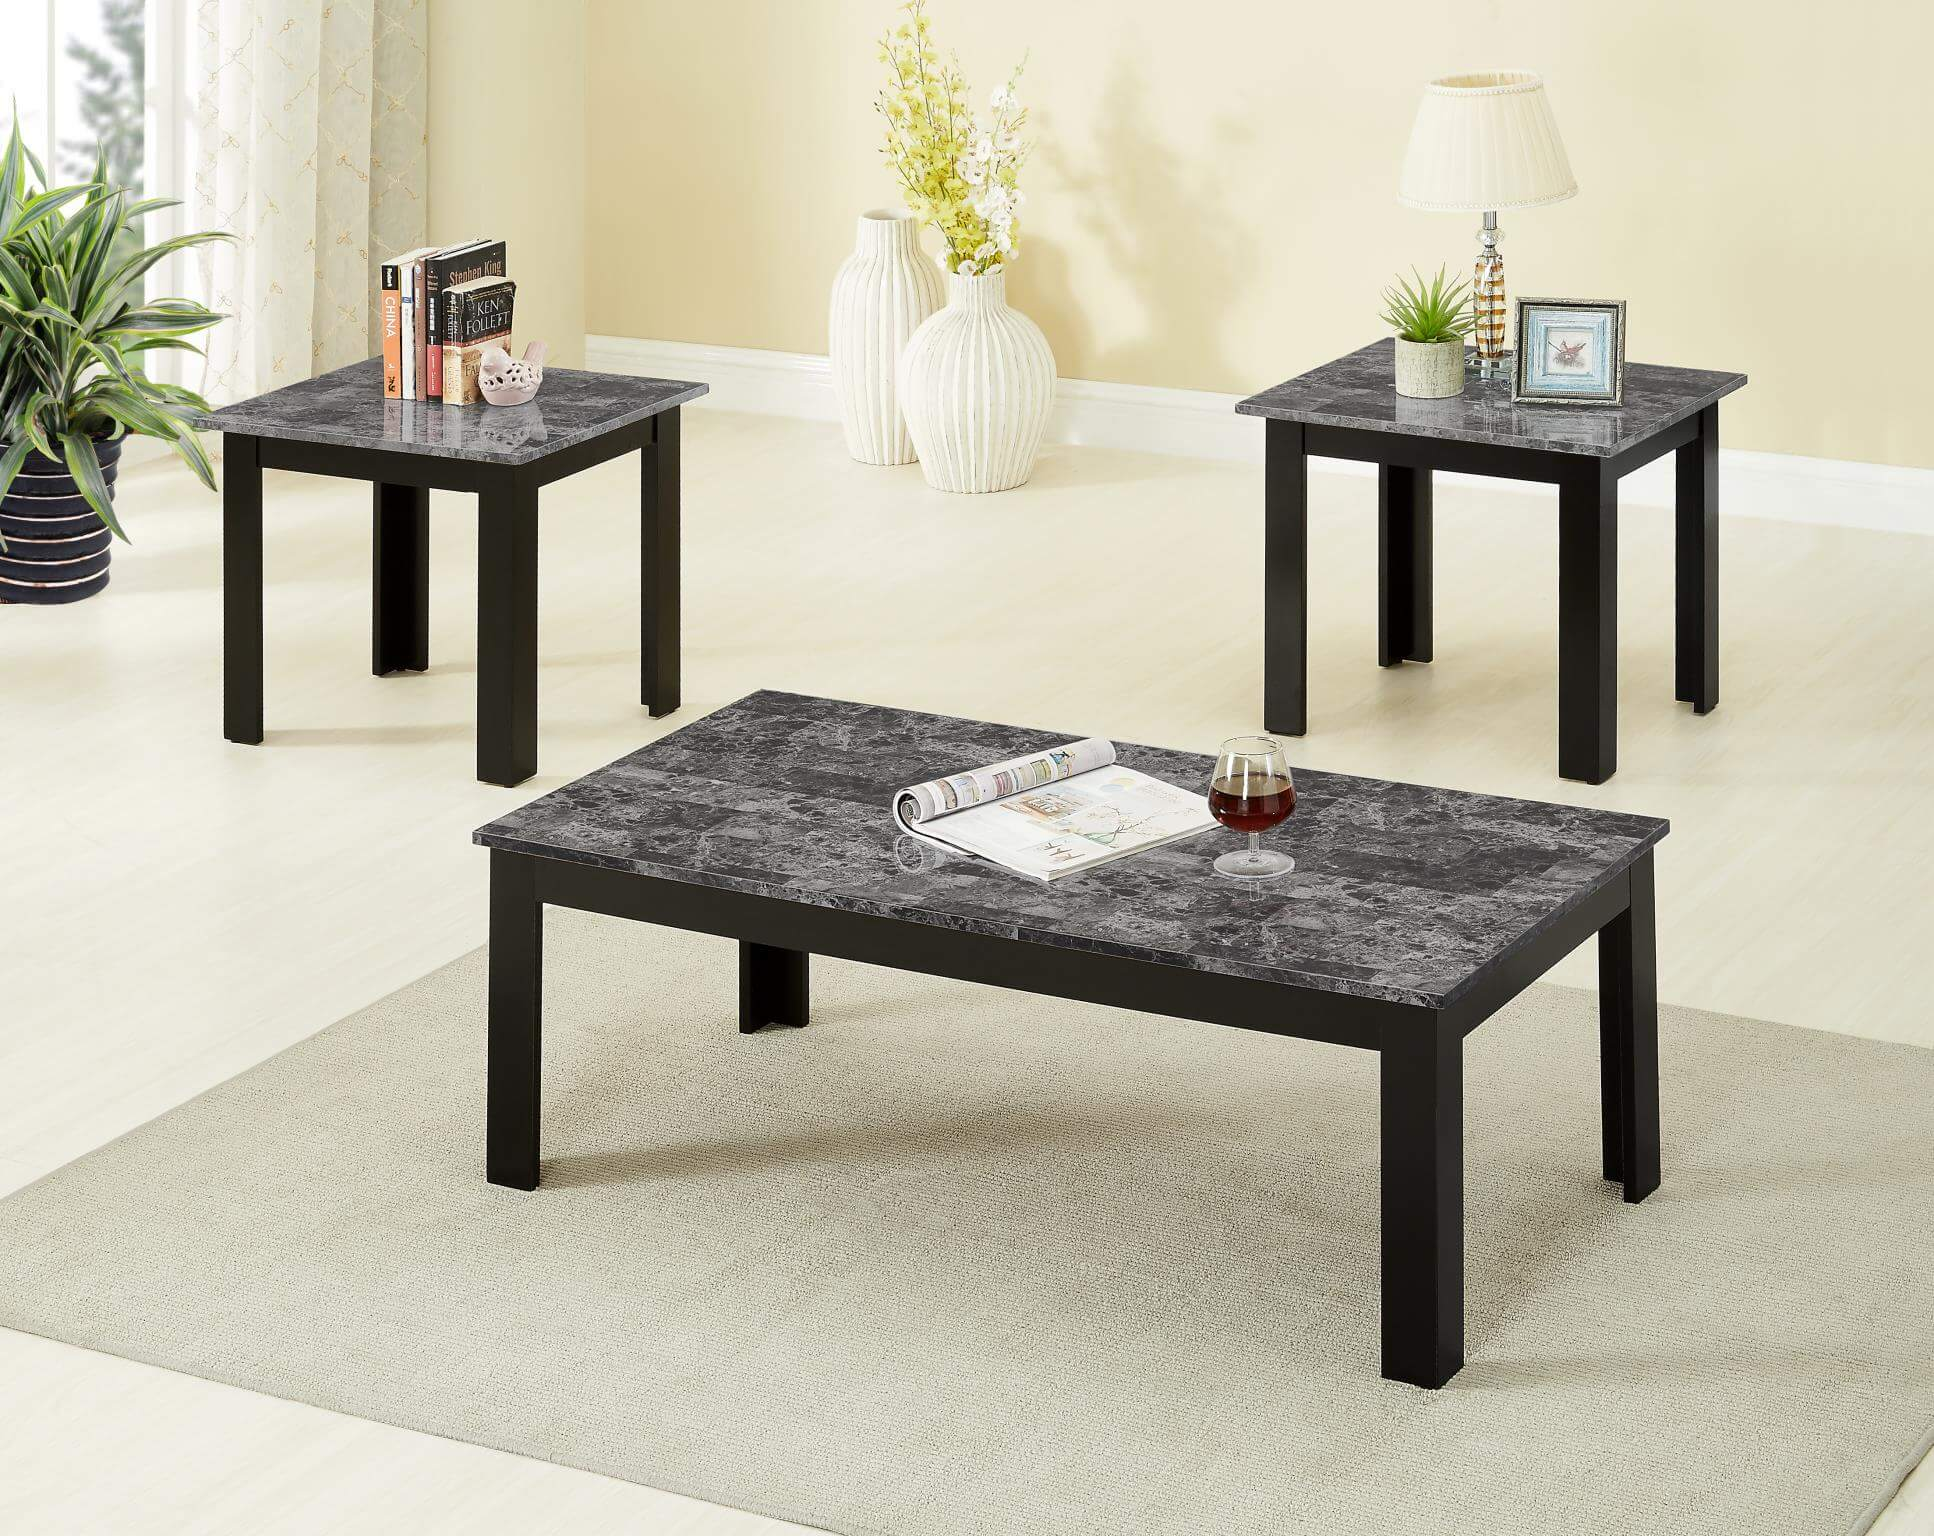 piece black faux marble coffee and end table set sets global trading inch high sofa small industrial side bedroom furniture with desk missions painted solid wood under counter dog